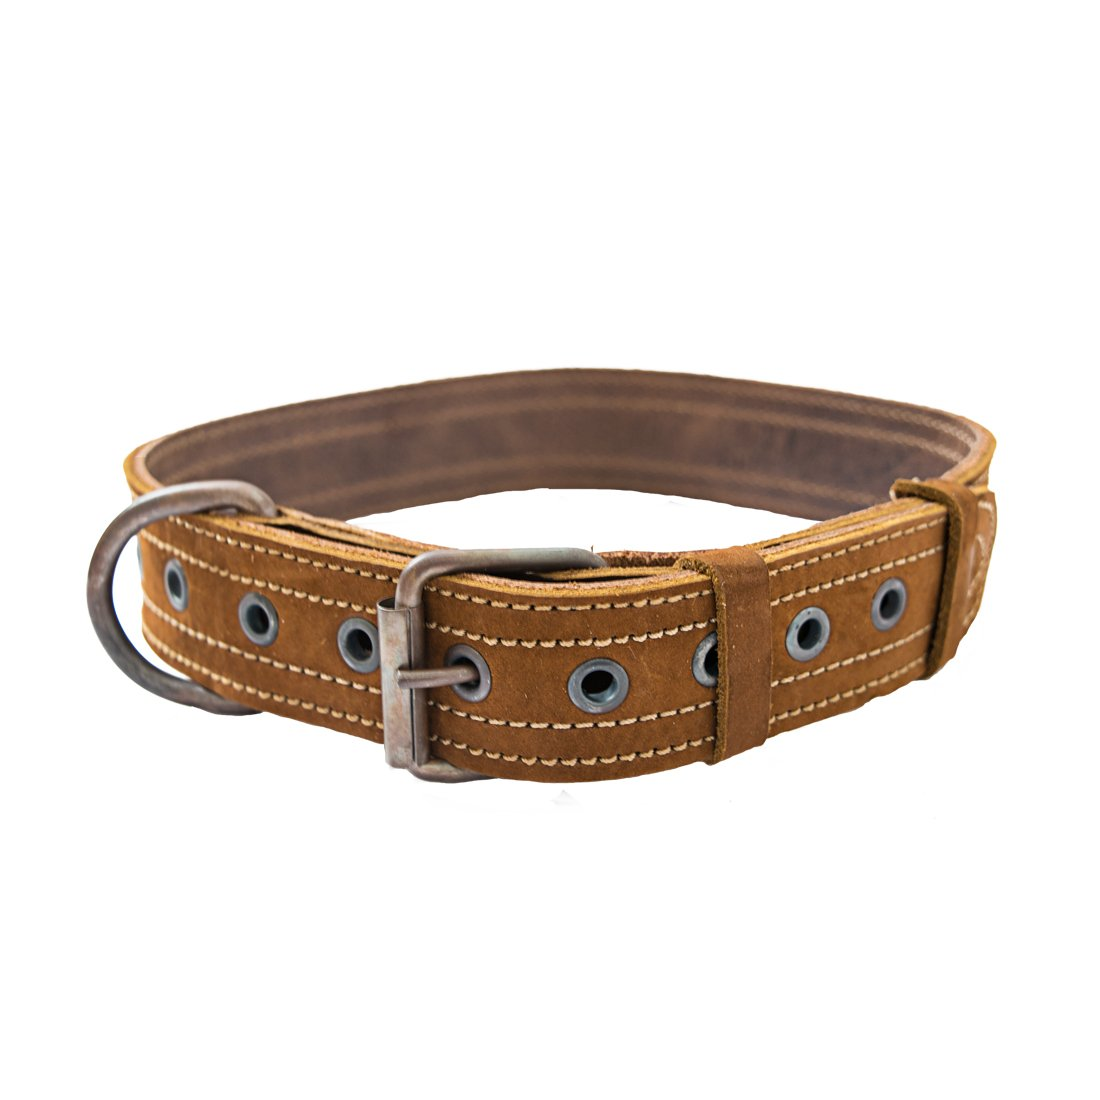 Leather Dog Collar For Medium Size Dog (10 to 19 Inches) Handmade by Hide & Drink    Swayze Suede